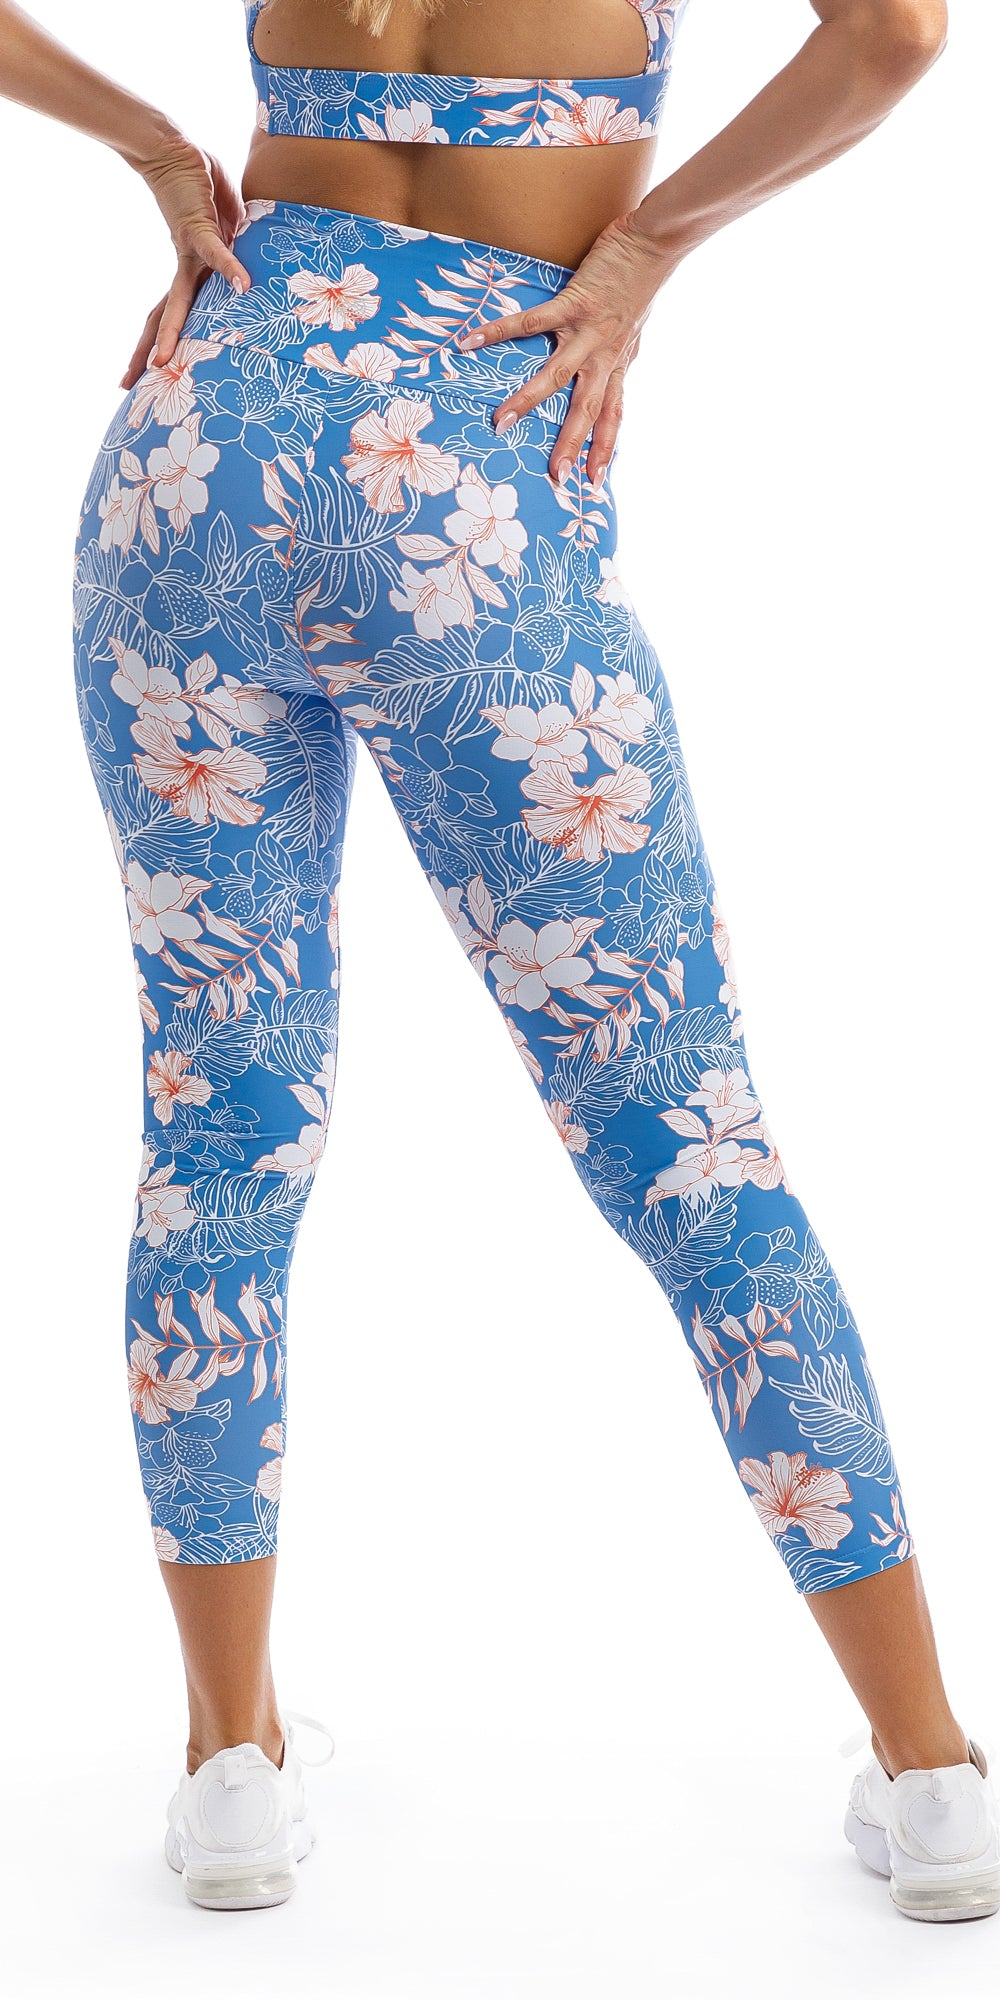 Lady wearing blue, white, pink floral Hibiscus Kiss print ultra high waist 7/8 leggings & matching infinity bra